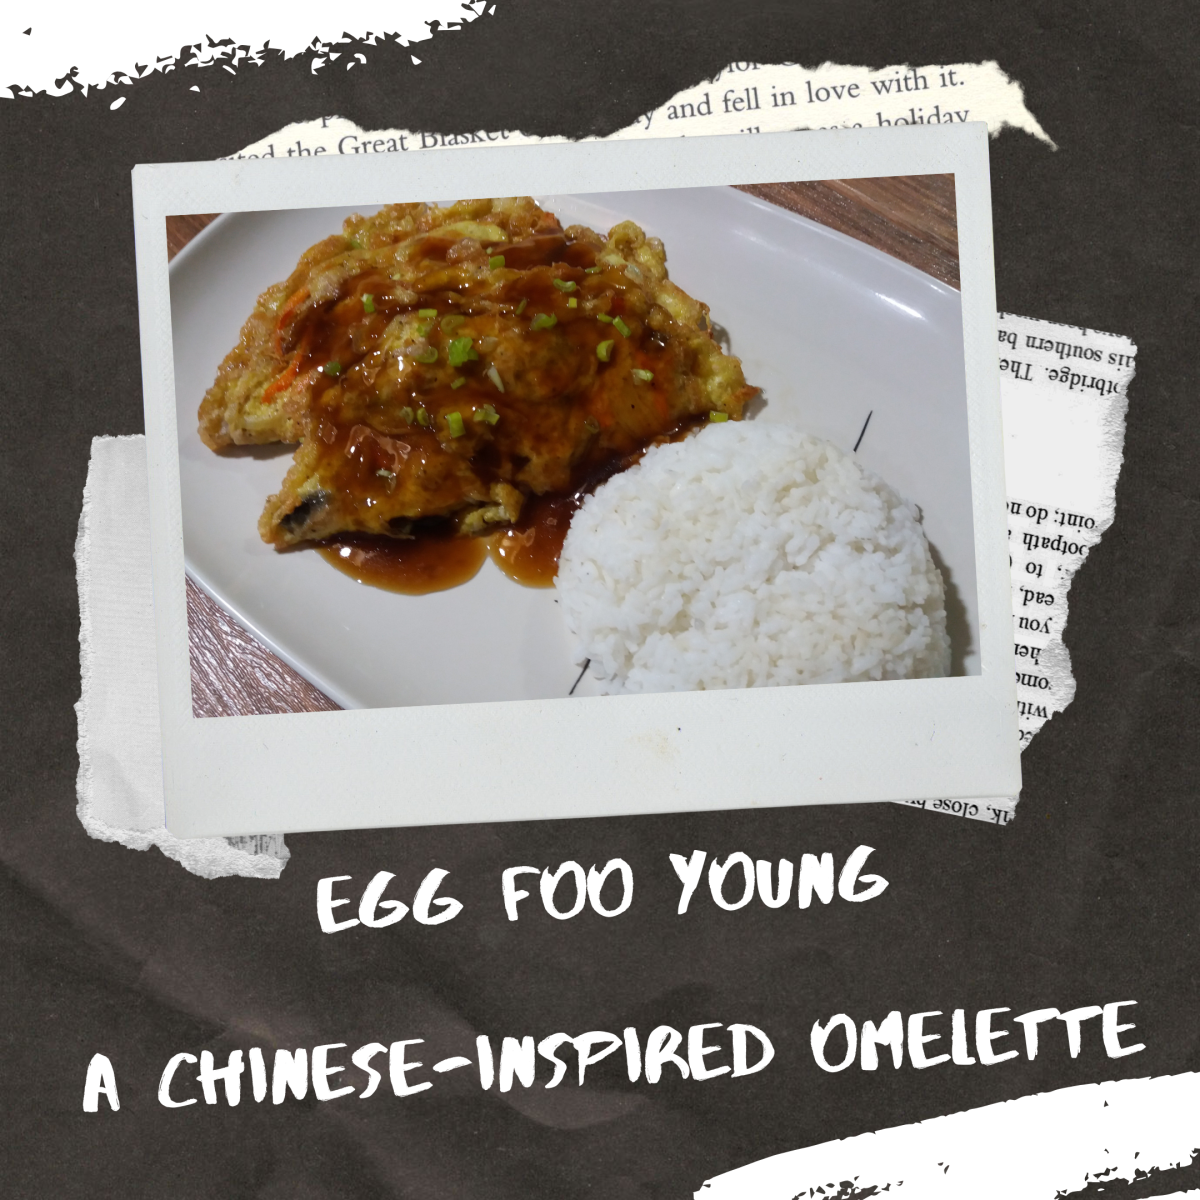 Egg foo young is a Chinese omelette recipe